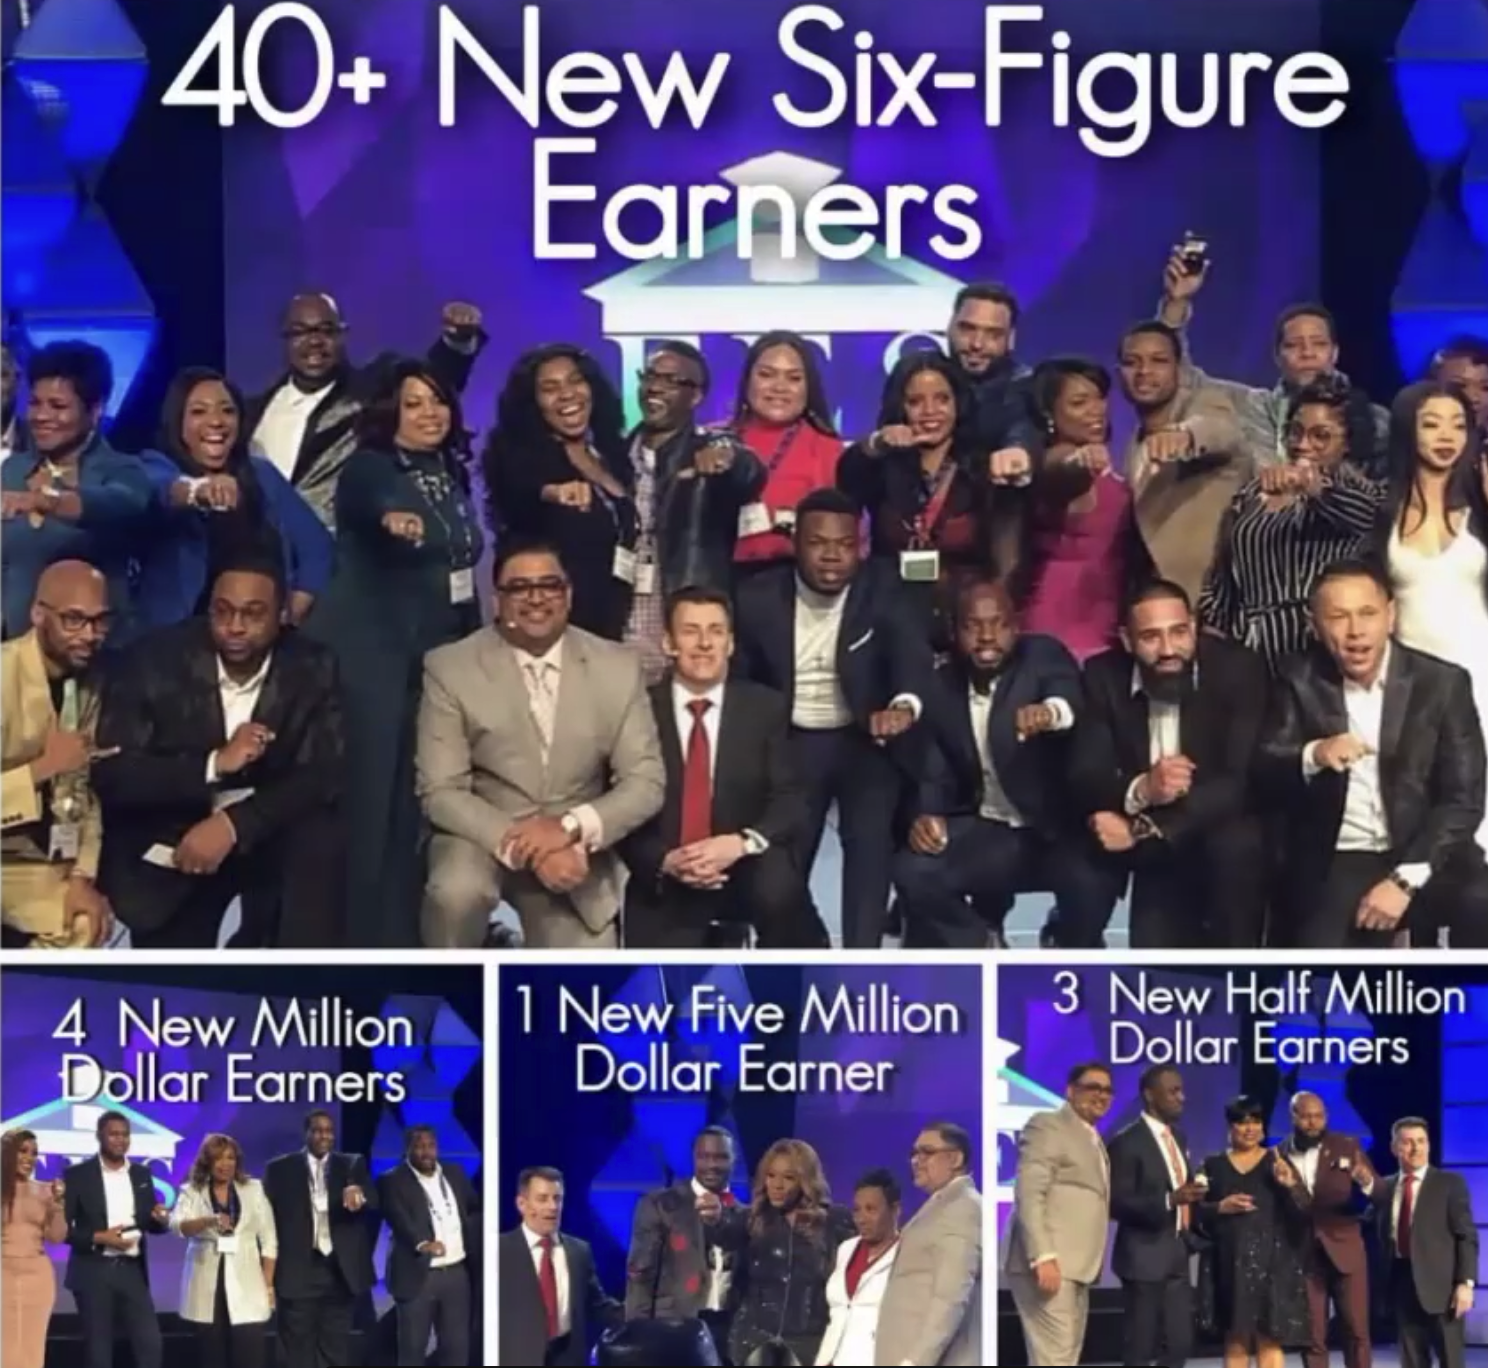 Million-Dollar-Earners-New-Opportunity